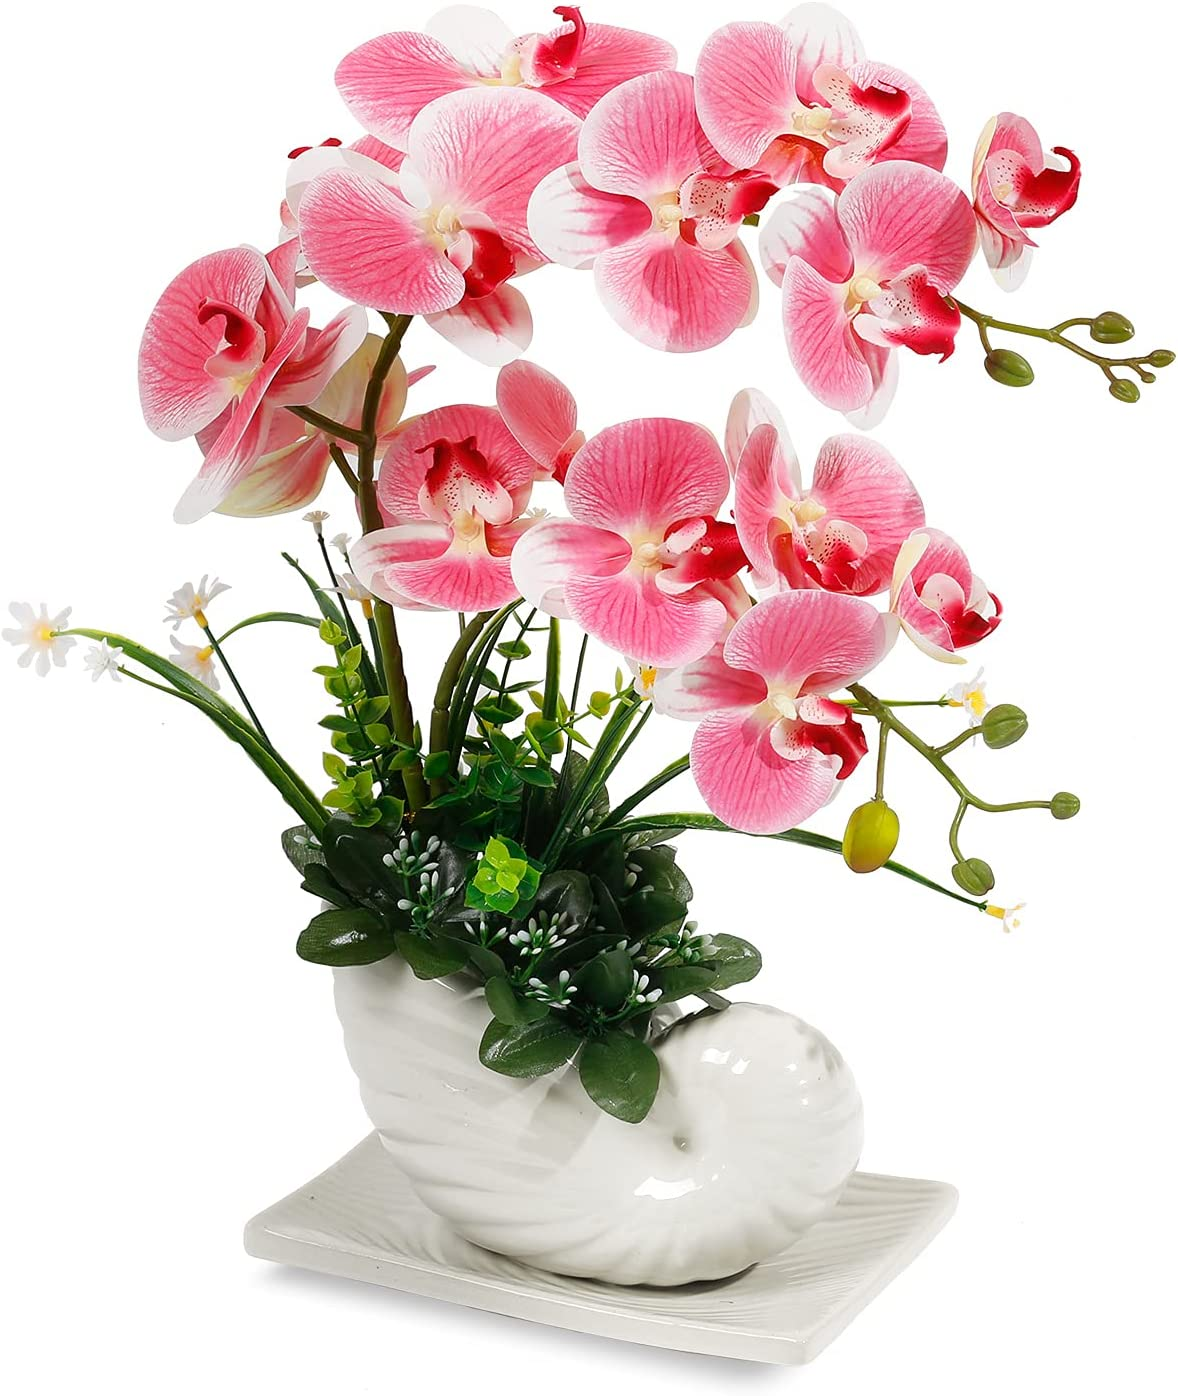 Orchid Pink Flowers Artificial Orchid Fake Orchid Flower Faux Orchids Pink with White Ceramic Vase Artificial Flowers Artificial Orchid Plants for Home Decor Indoor Office Table Centerpieces